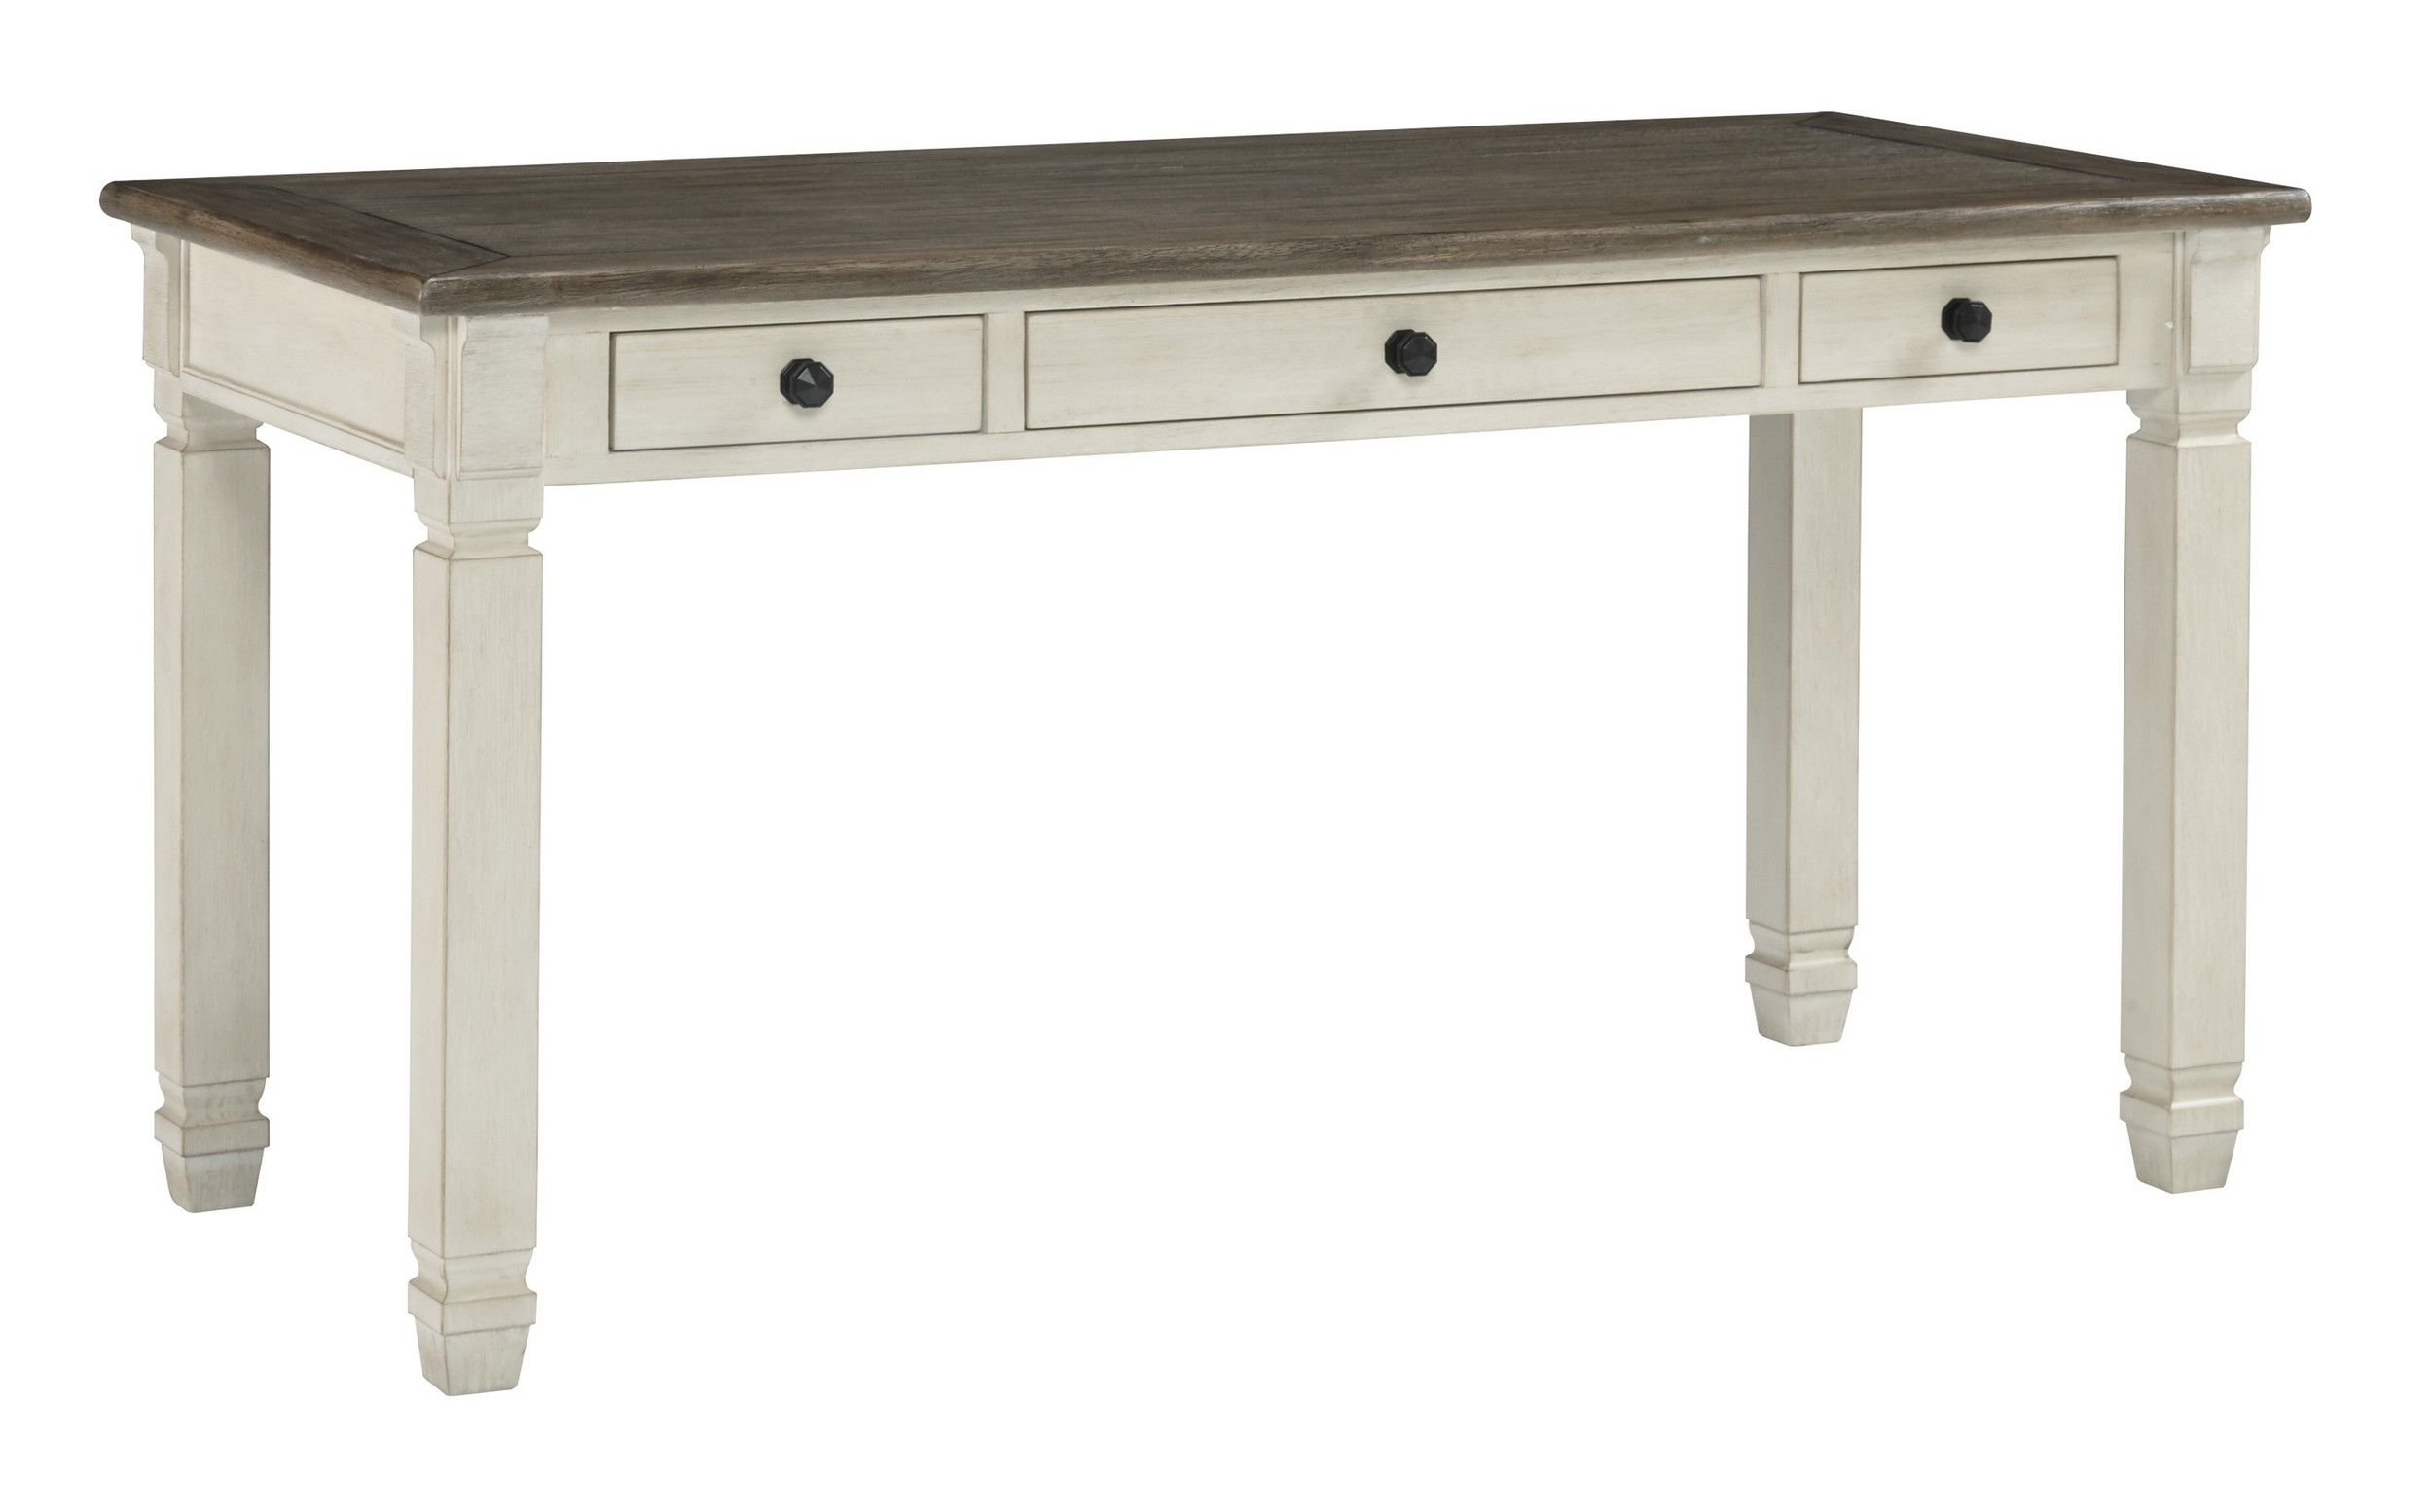 Signature Design By Ashley Bolanburg Two Tone 60 Home Office Desk H647 44 Goedekers Com Shabby Chic Living Room Furniture Shabby Chic Room Shabby Chic Decor